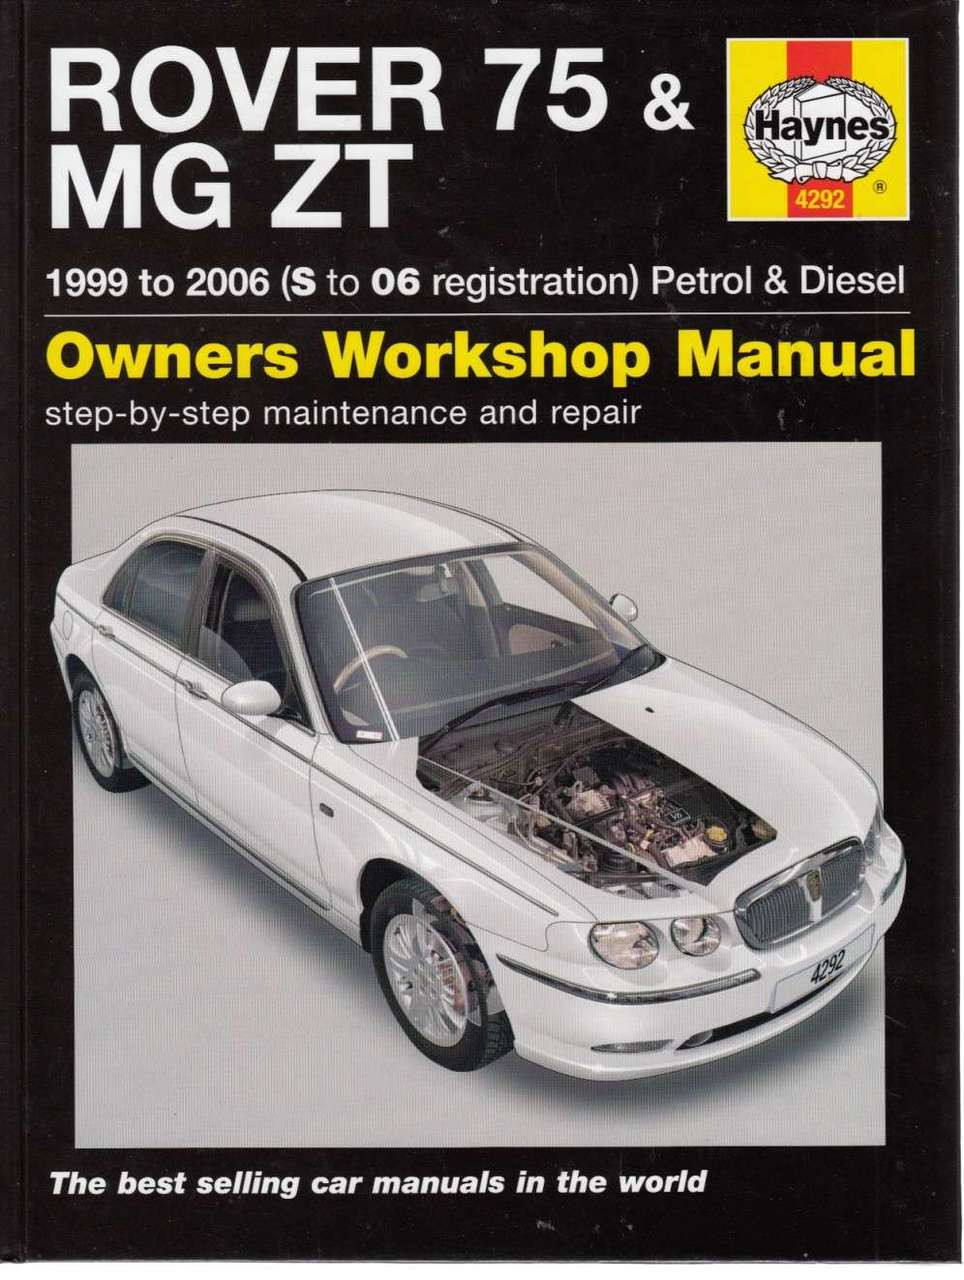 Rover 75 & MG ZT Workshop Manual ...